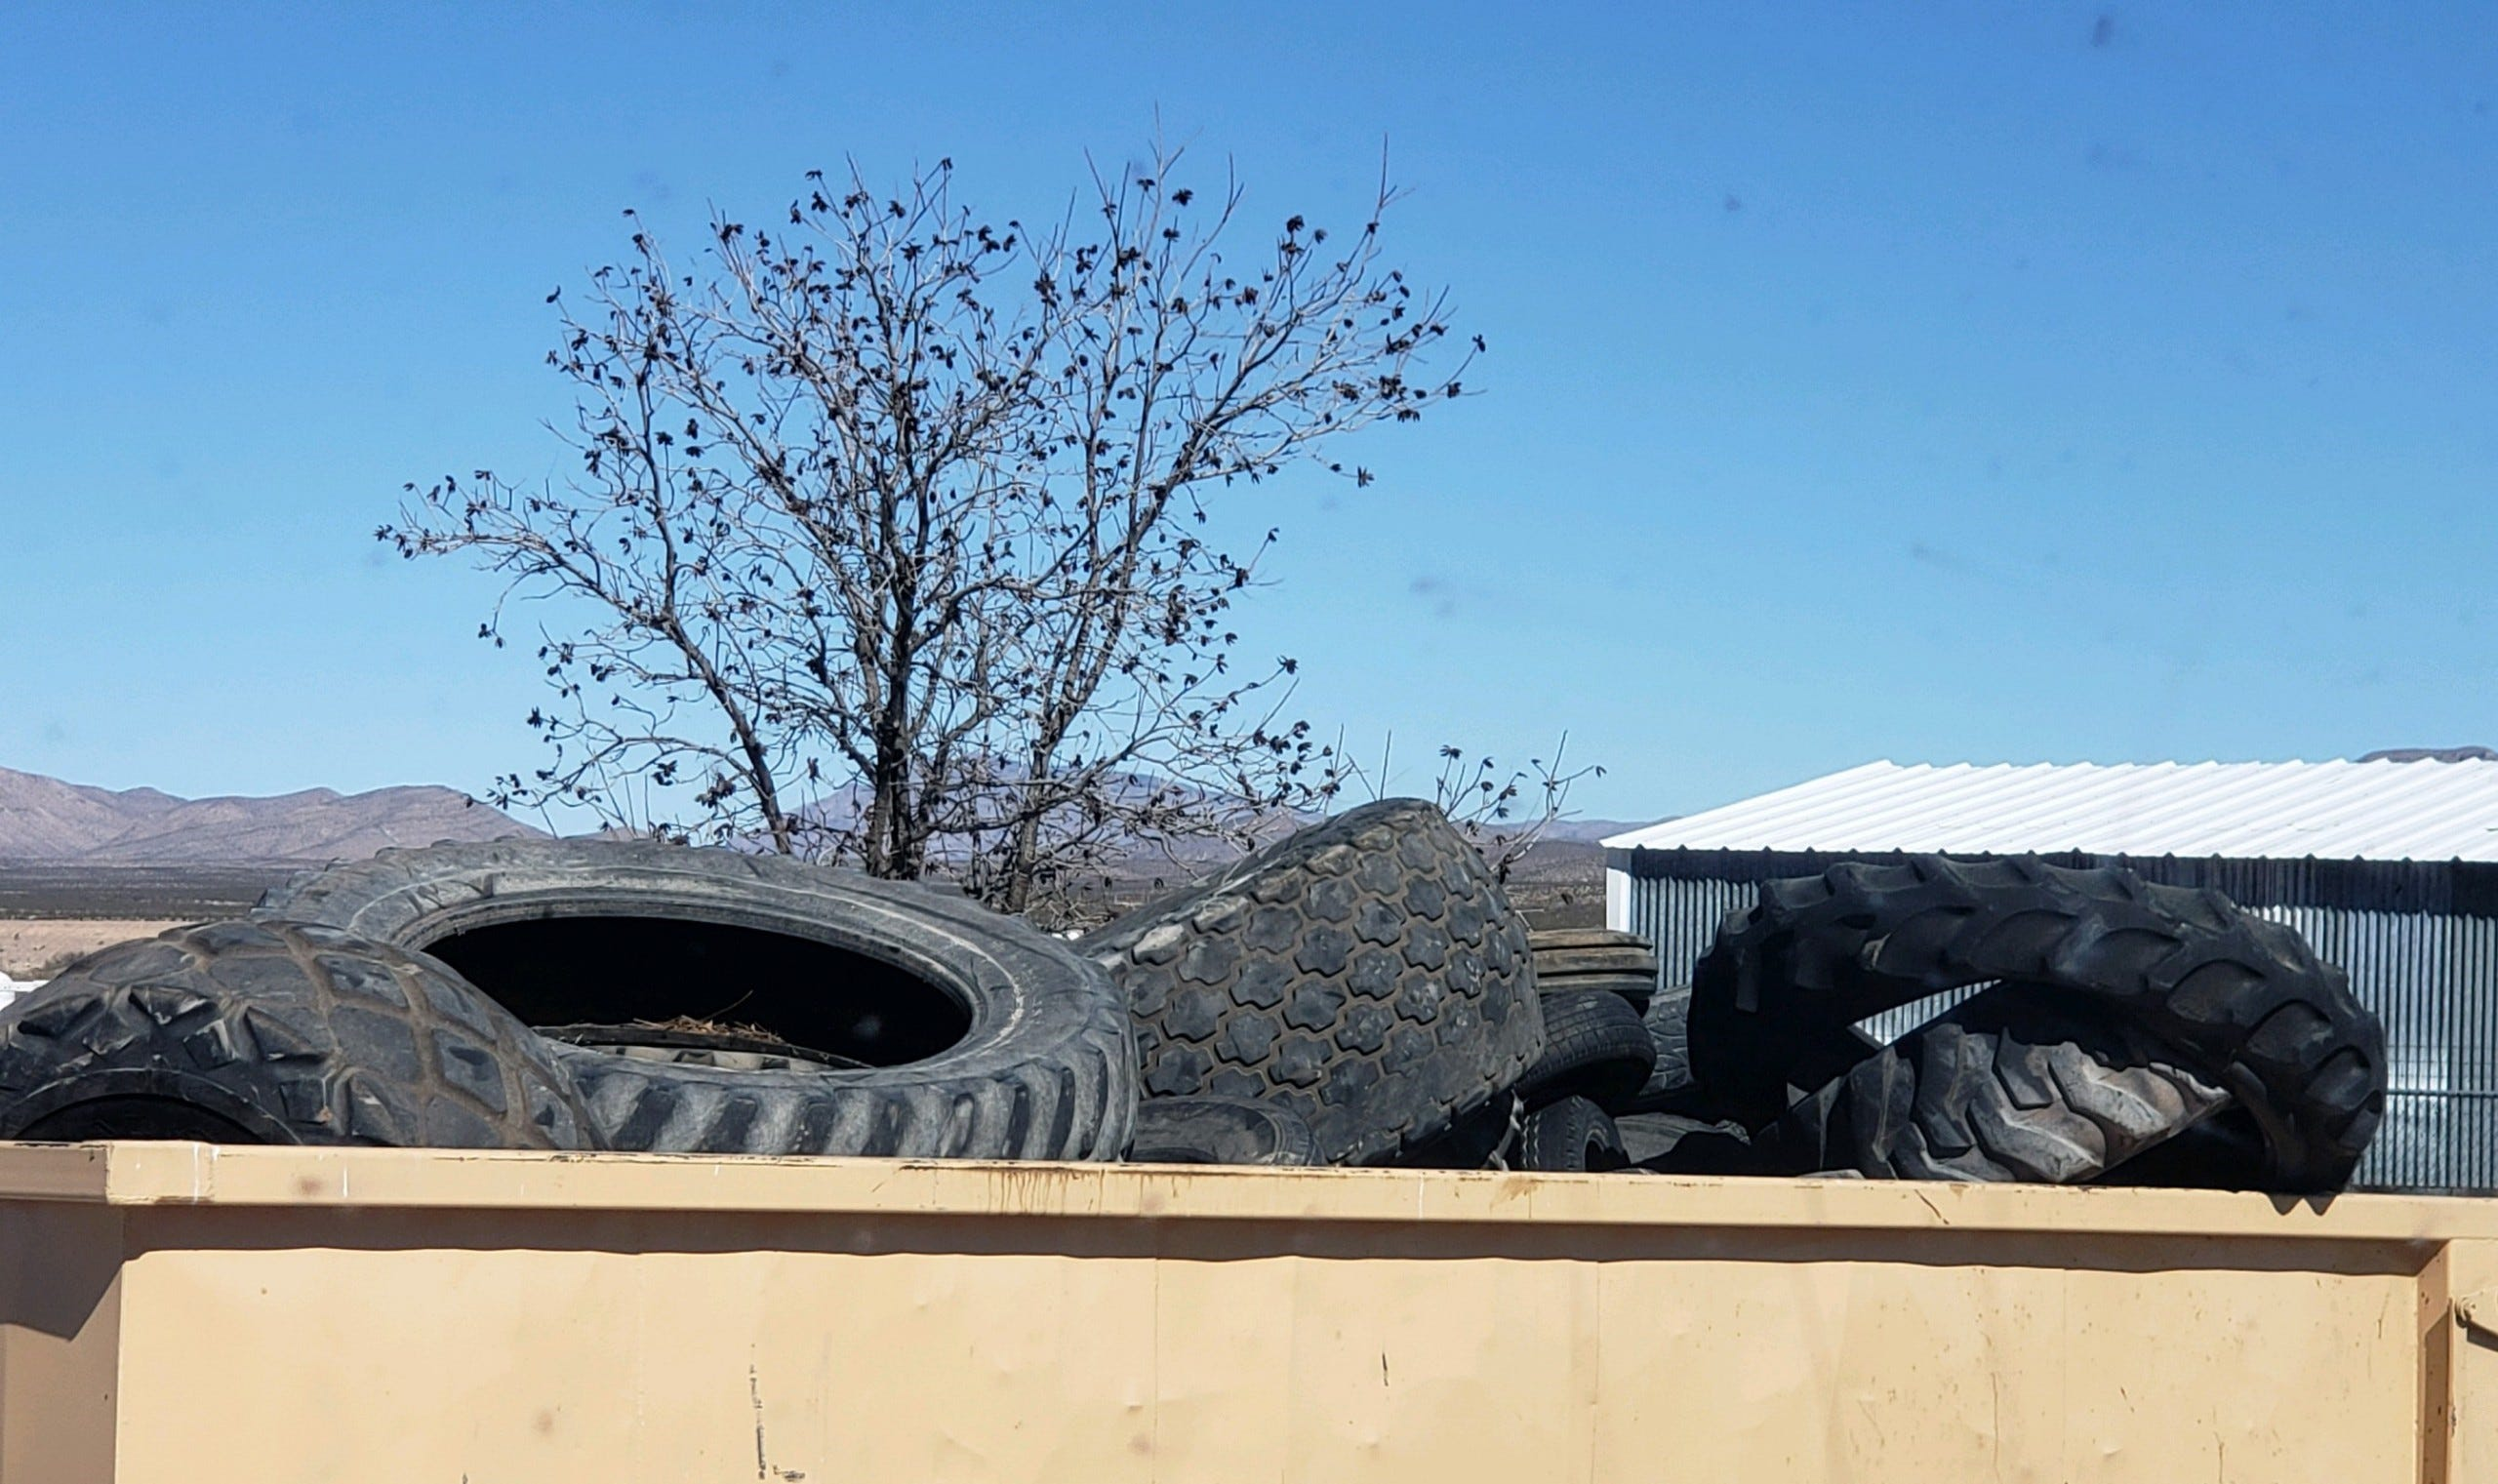 New grants help pay for tire disposal in Doña Ana County | Las Cruces Sun